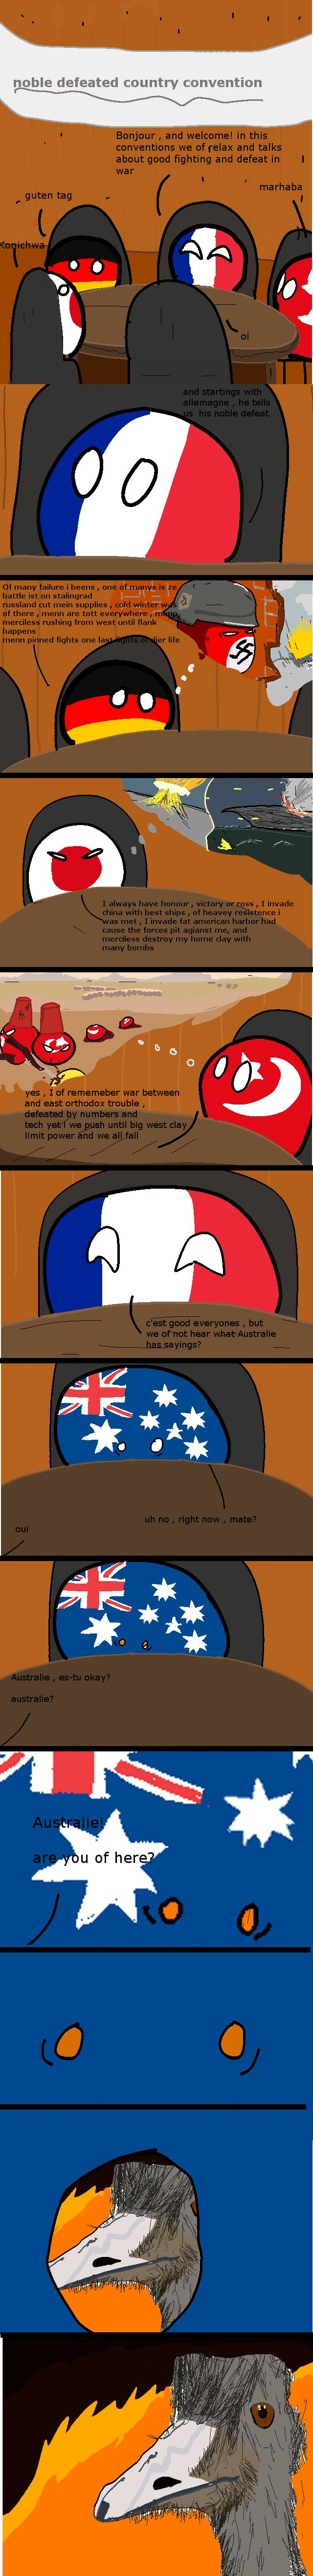 "The Great Emu War ""The Epic Defeat Relaxation Convention"" ( France, Germany, Japan, Turkey, Australia ) by bluegad6  #polandball #countryball"